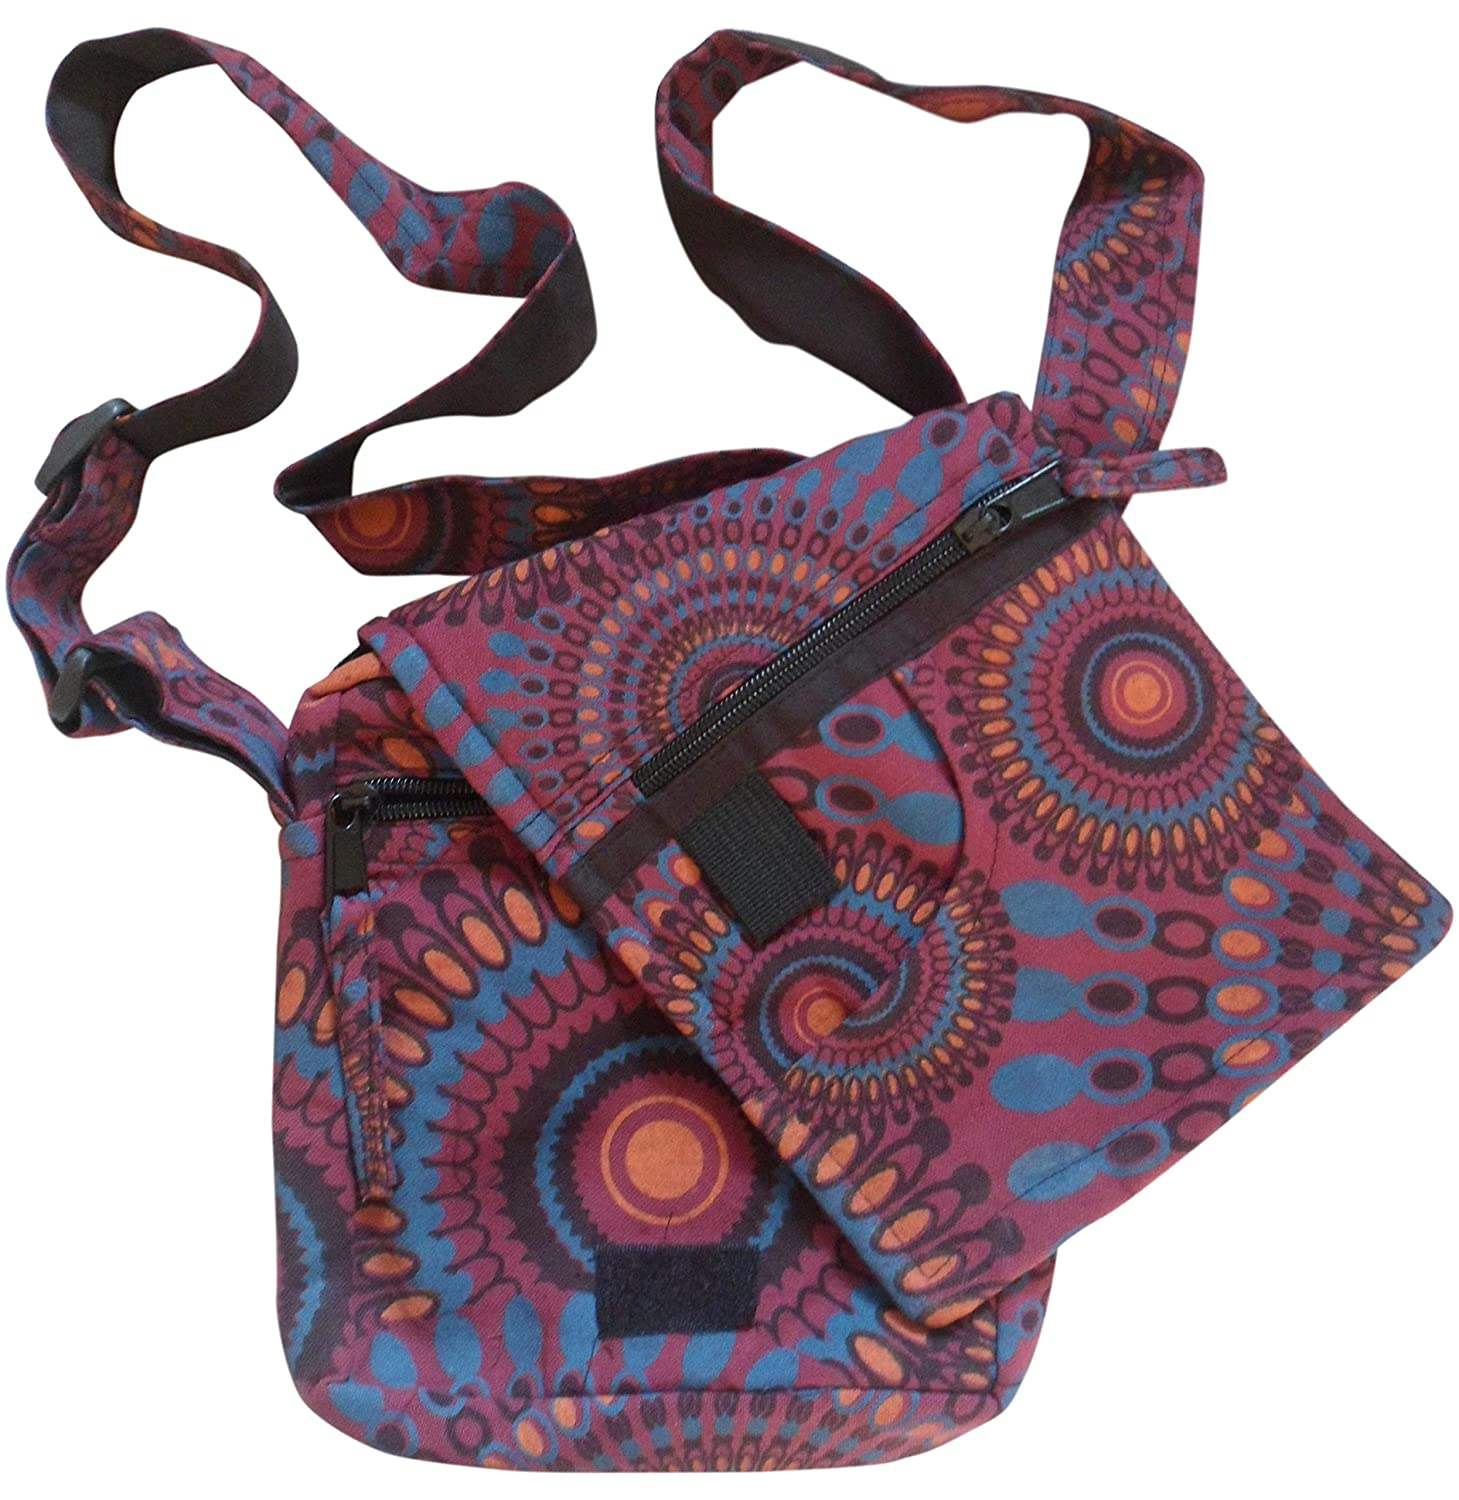 Lots of Pockets Hippy Boho Shoulder Passport Bag Fully Lined Made in Nepal